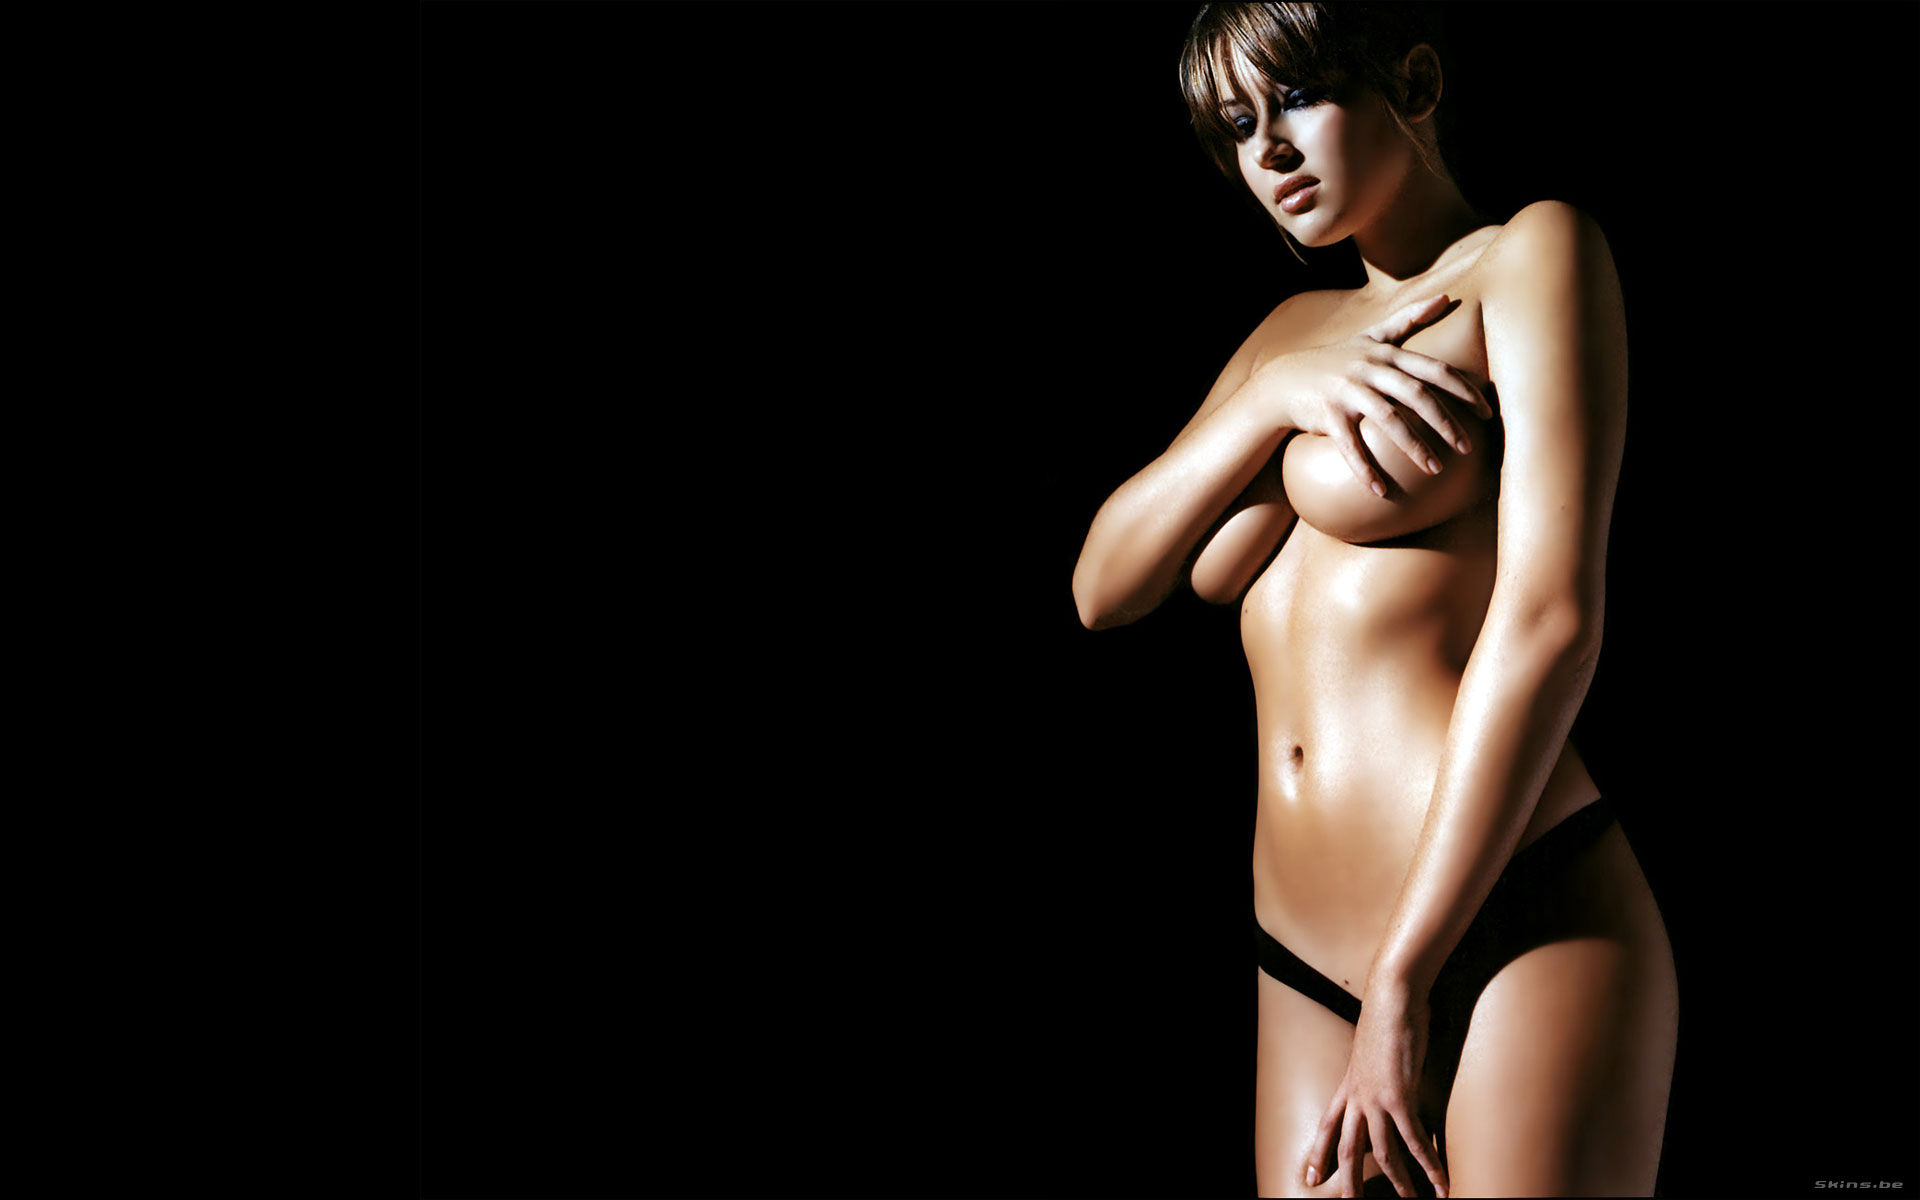 Sindori nude wallpapers adult clips